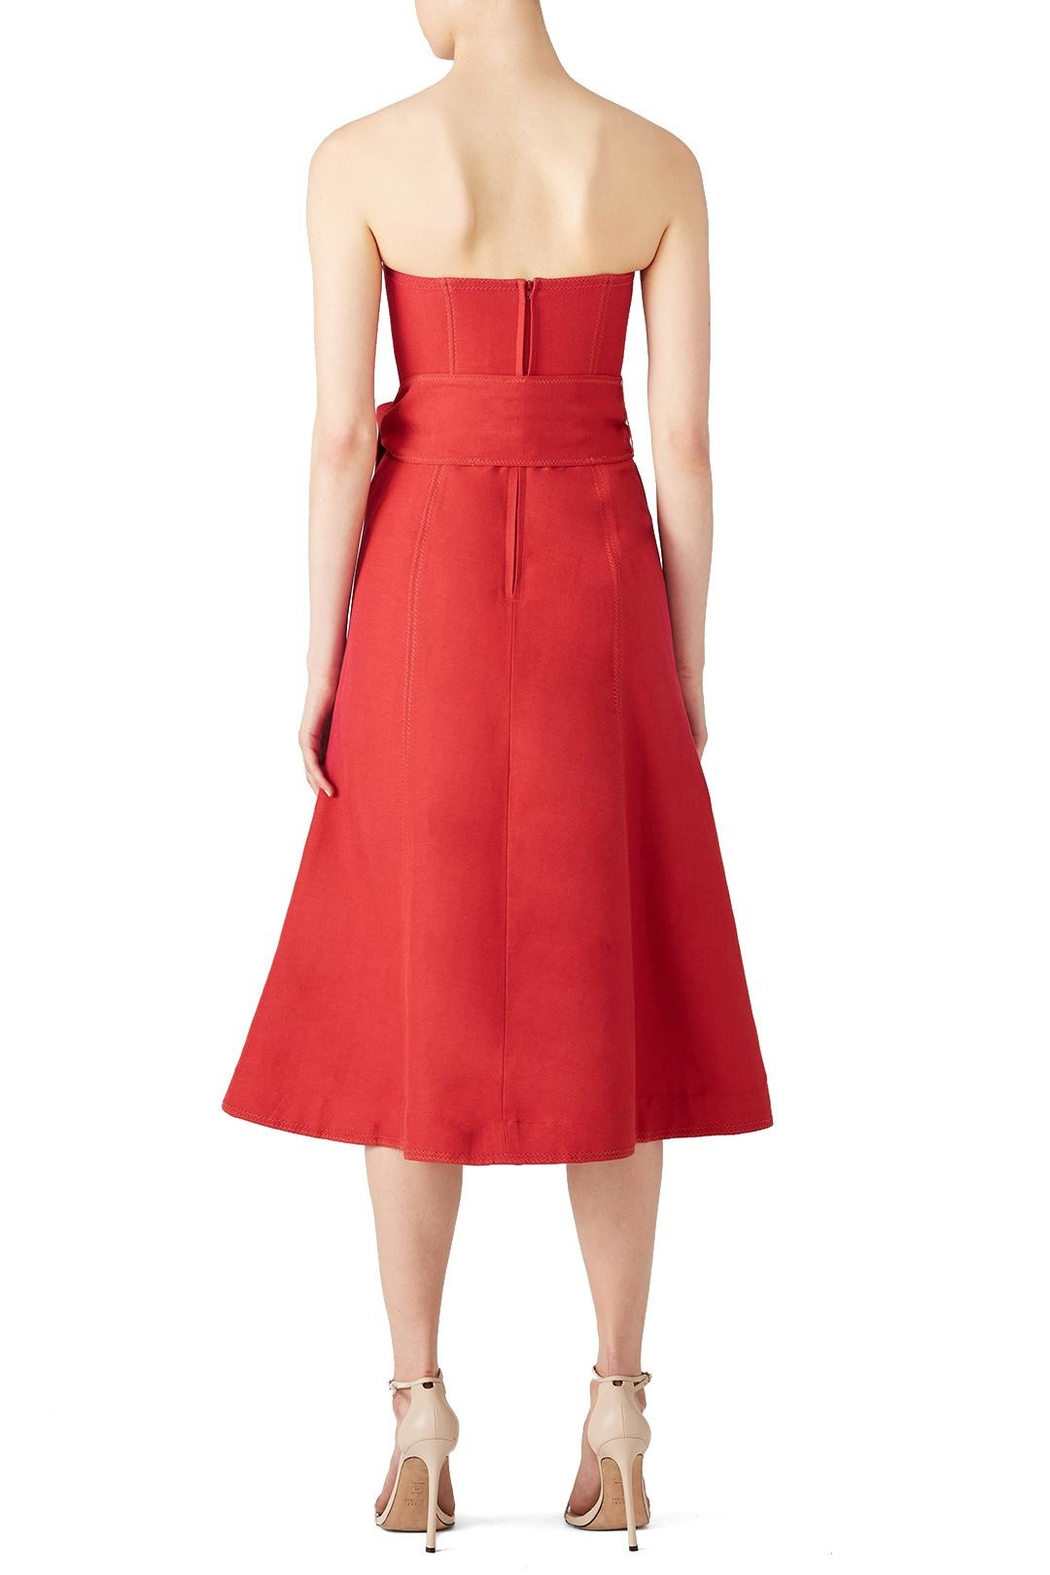 C/MEO COLLECTIVE Red Midi Dress - Side Cropped Image